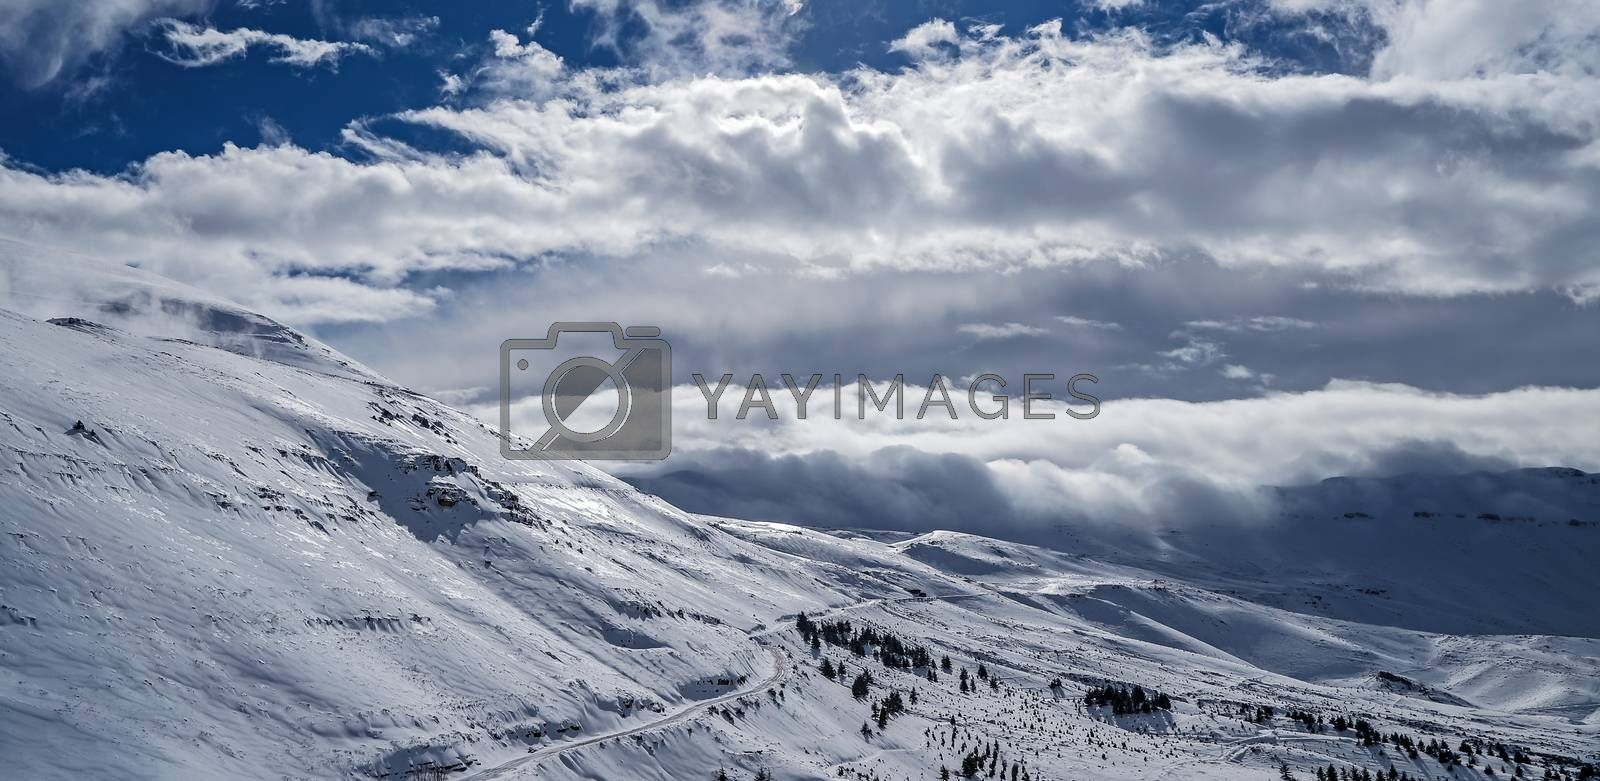 Beautiful winter landscape, high mountains covered with white snow on bright sunny day, Cedars Mountains, Lebanon